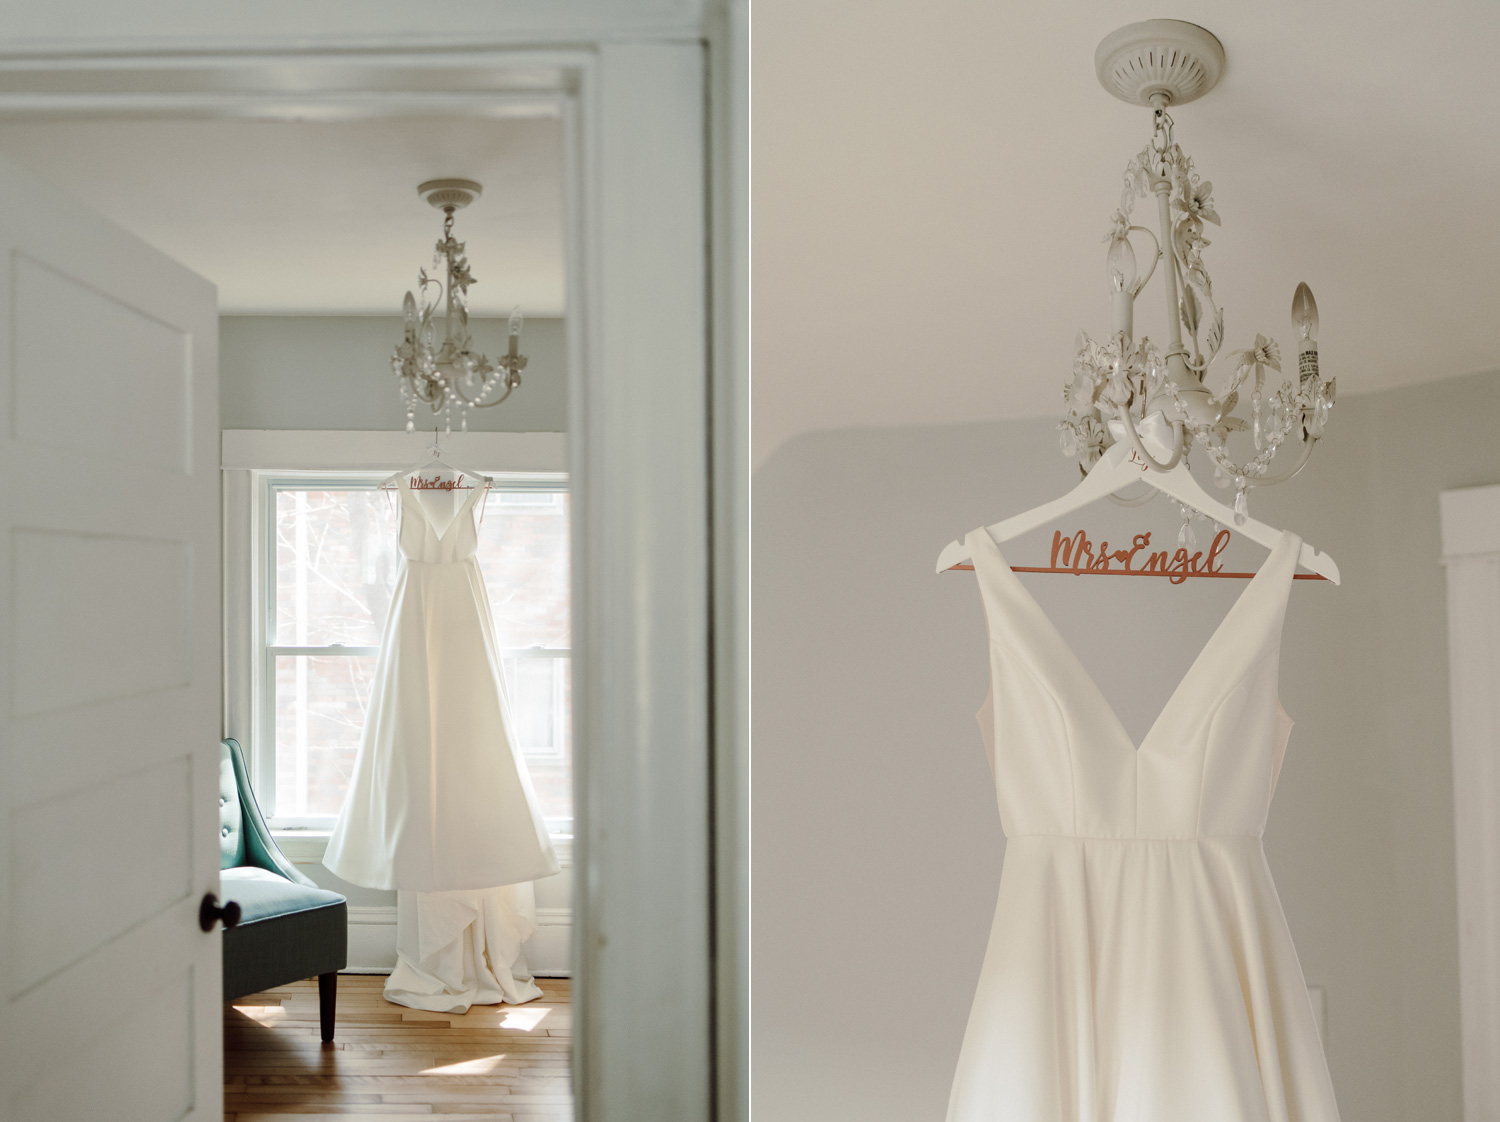 white silk wedding dress hanging in home